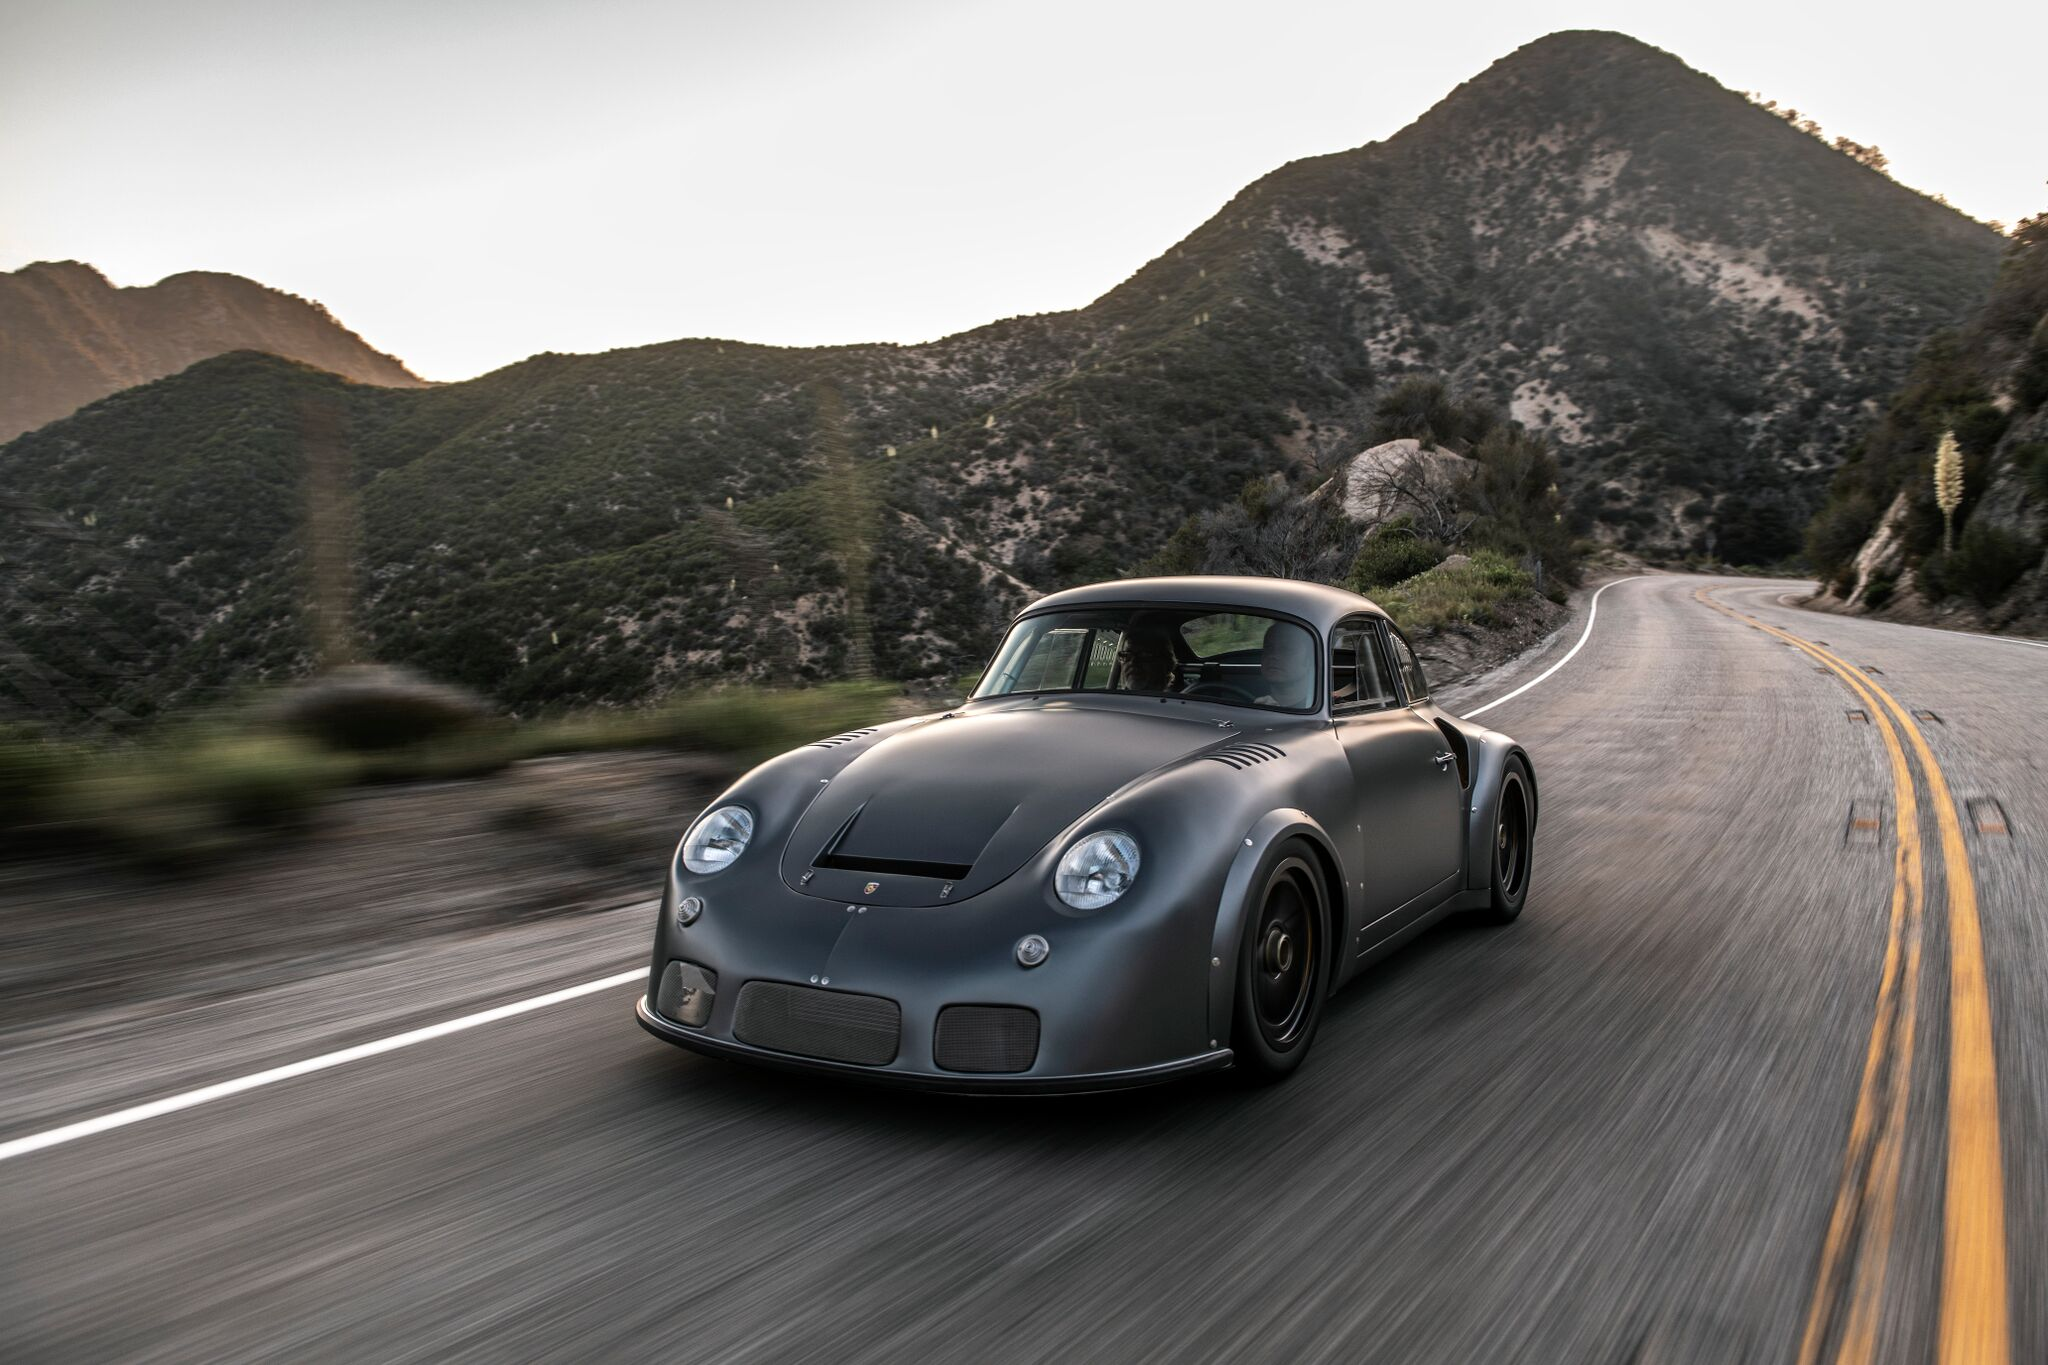 Porsche-356-RSR-Outlaw-by-Momo-and-Emory-motorsports-13